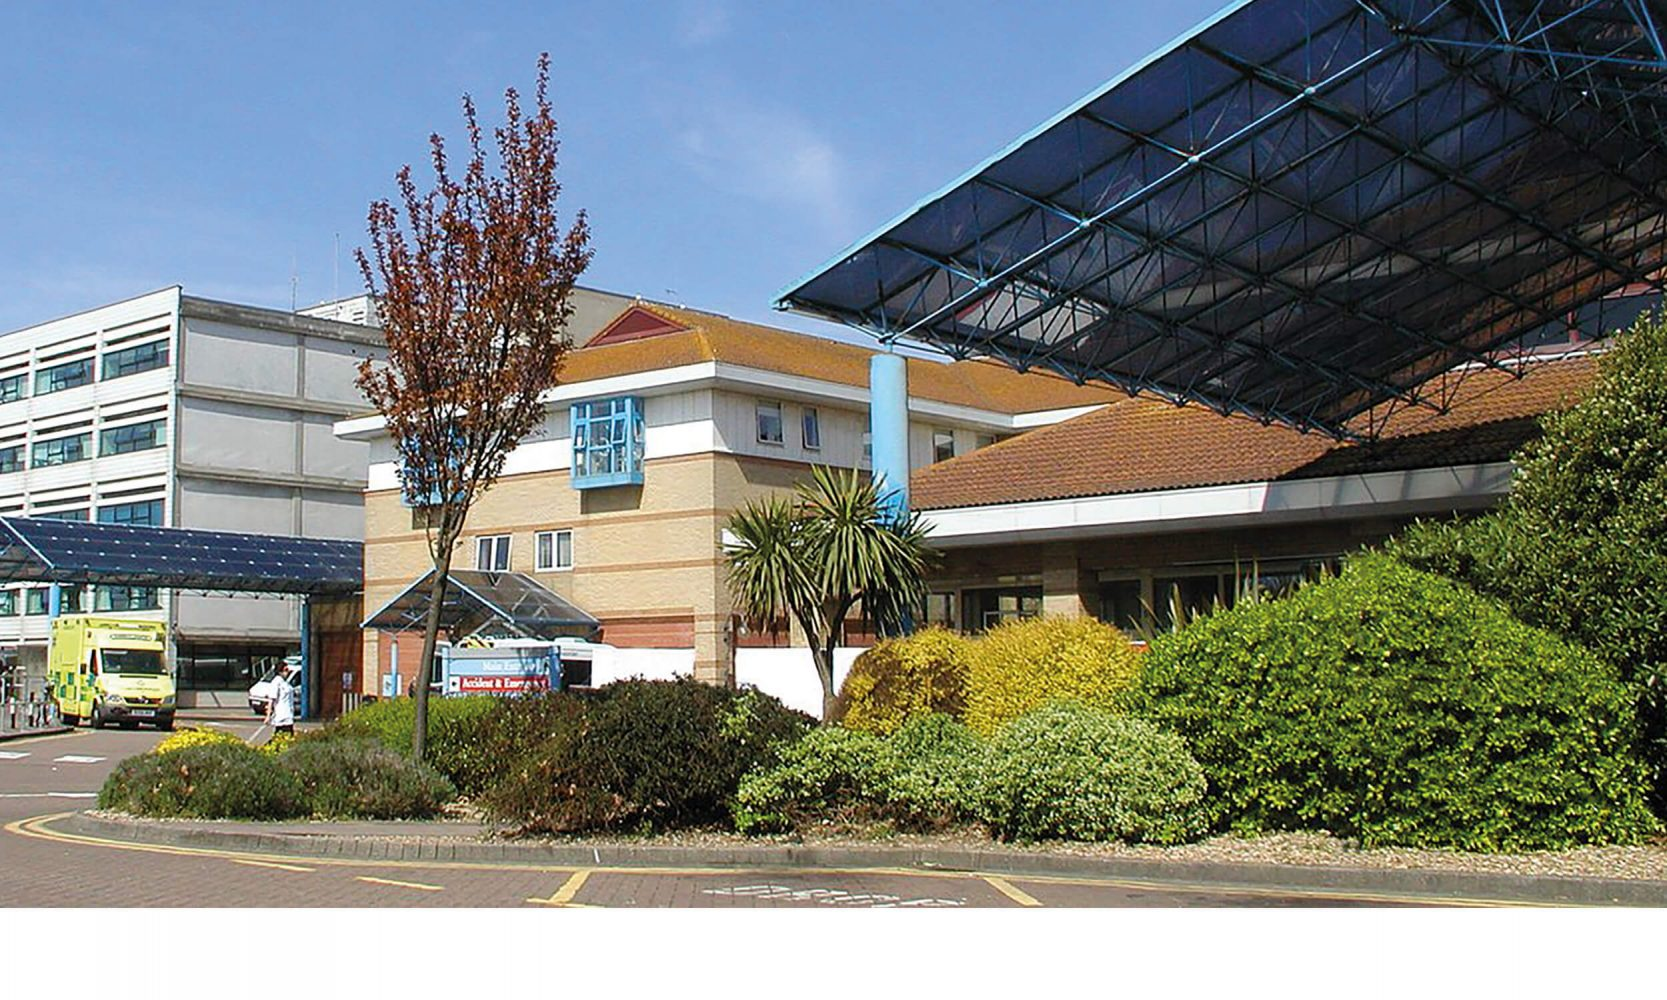 Case Study - Worthing Hospital - Fileder Filter Systems